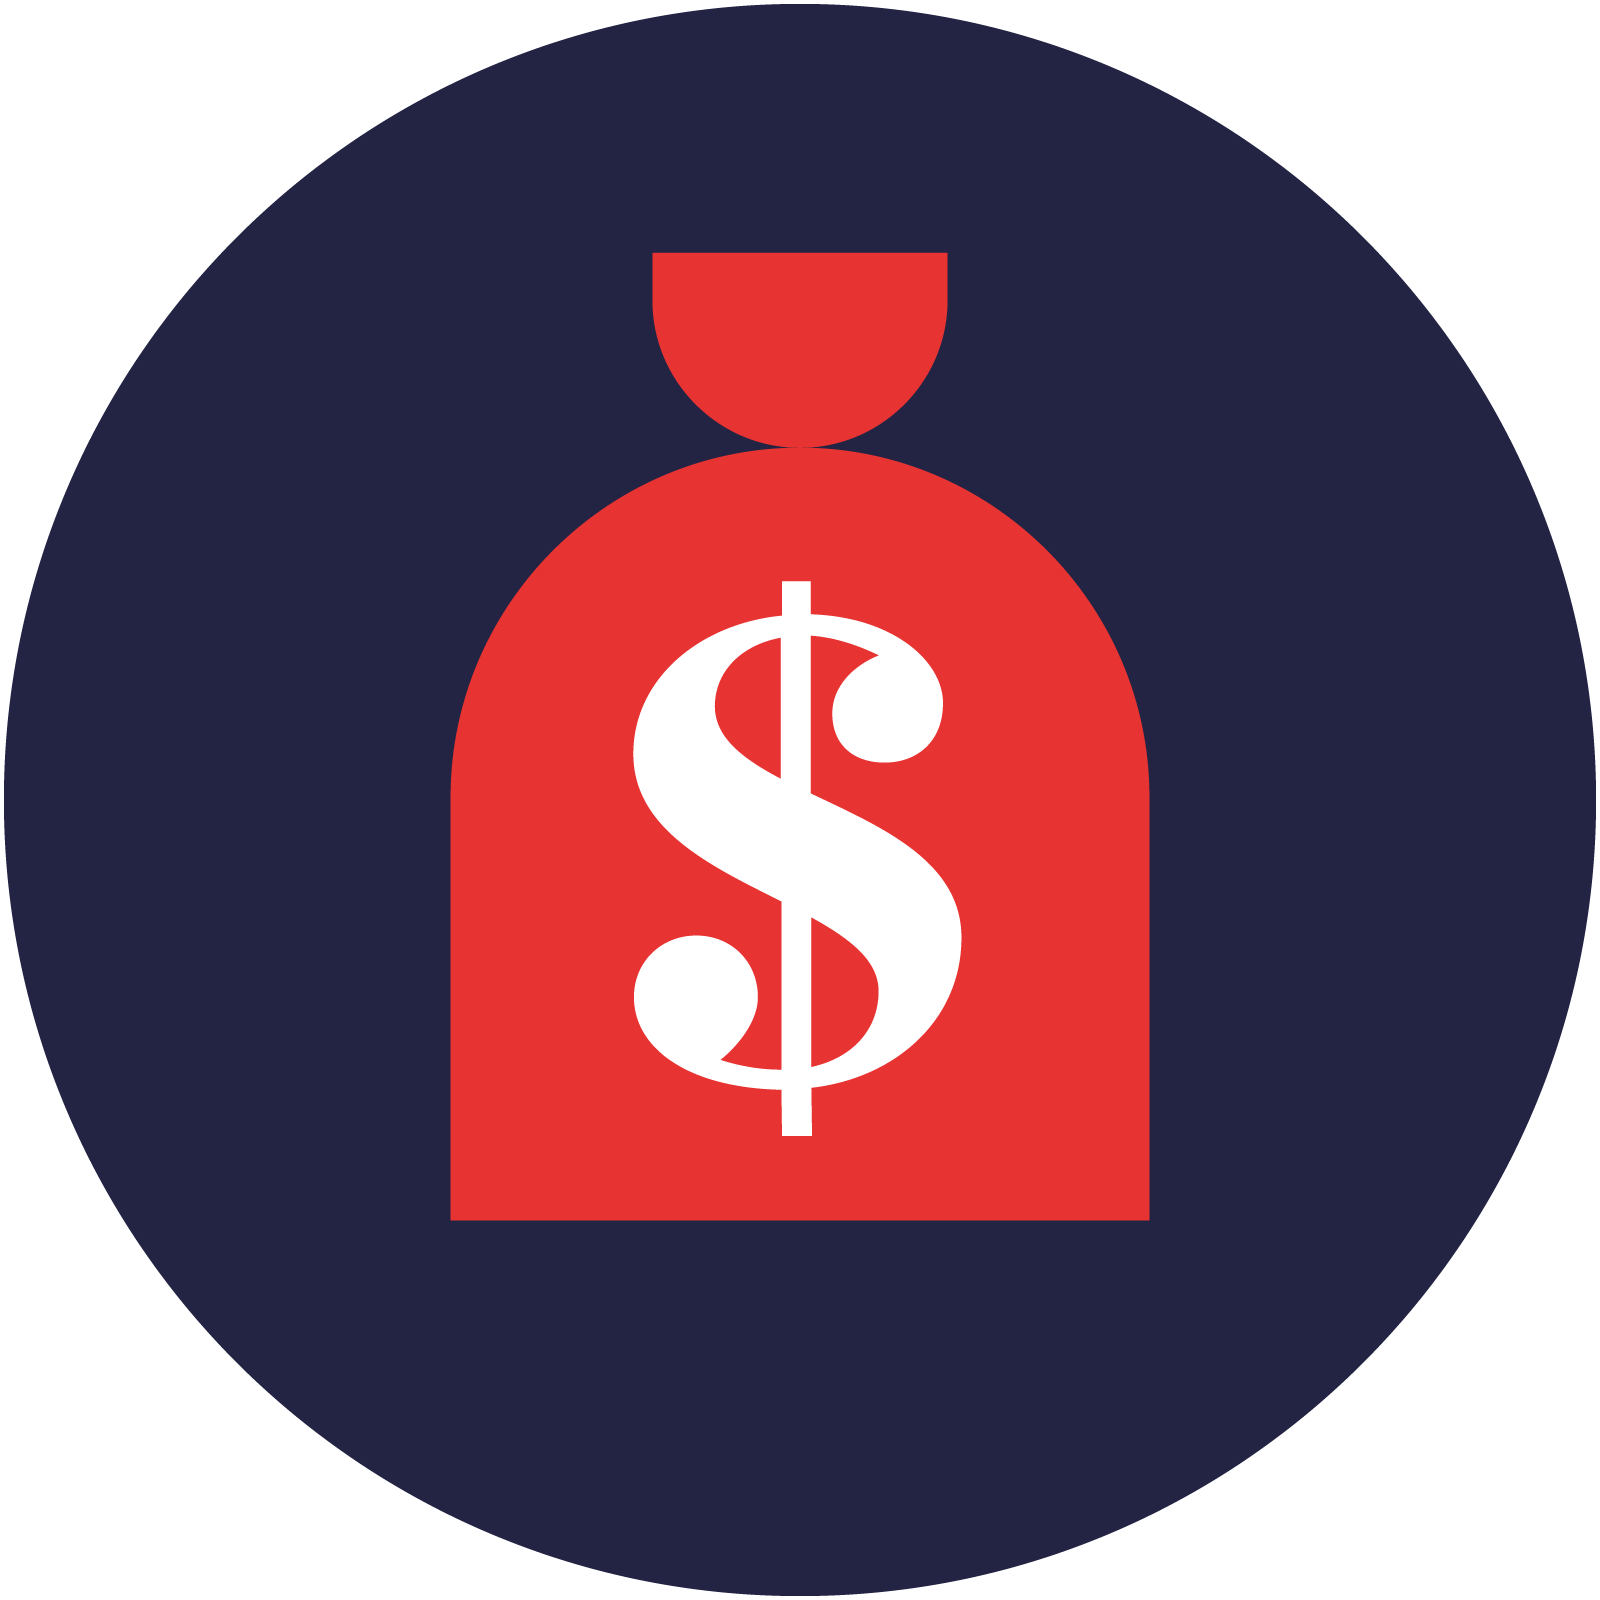 Services_icon1.png